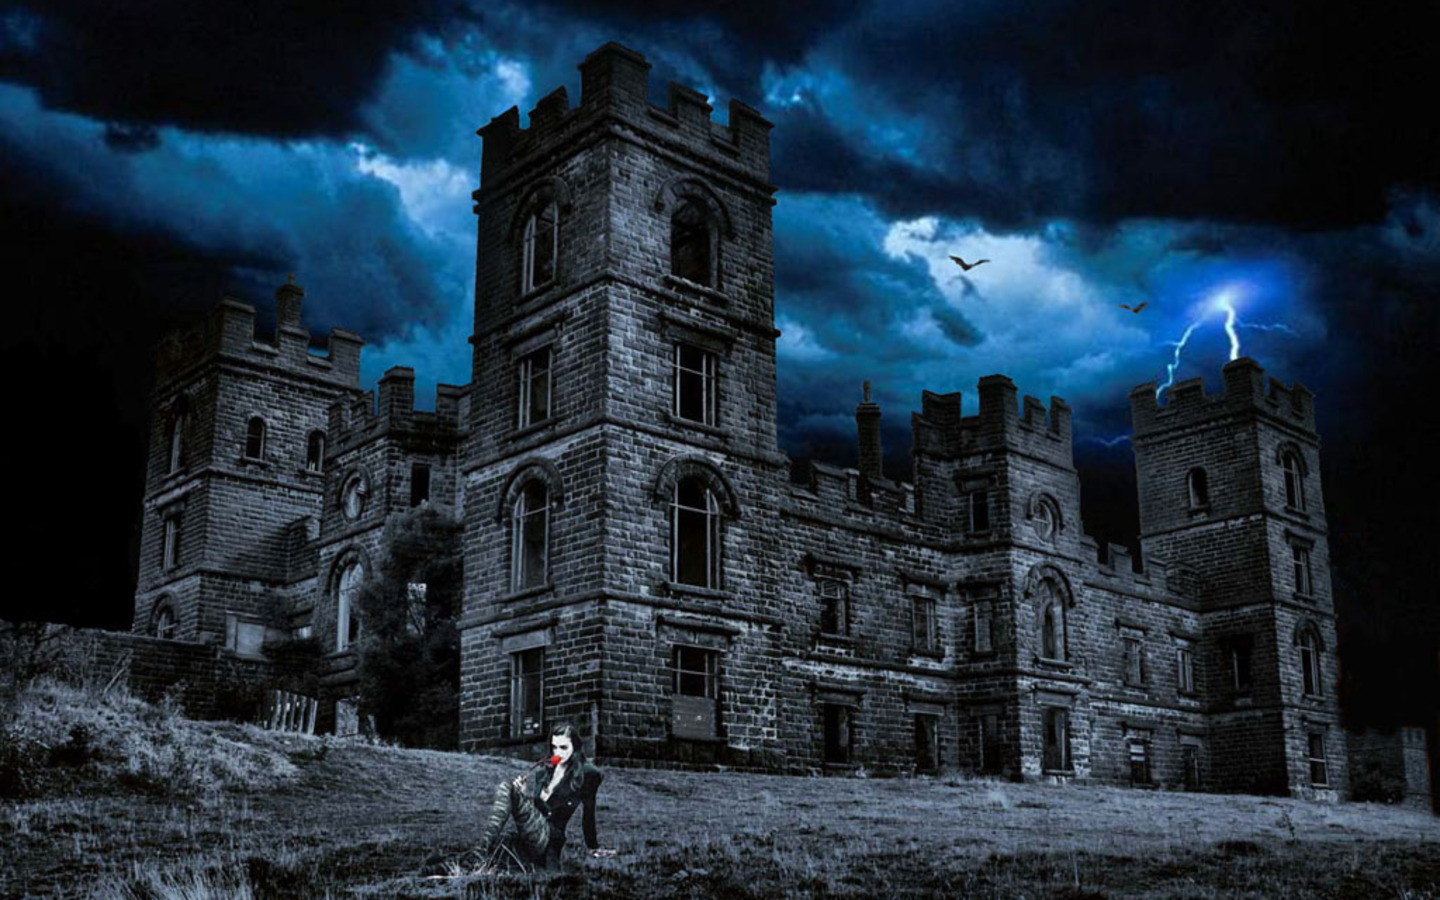 Horror ghost houses wallpapers hq image size 1440x900 for Wallpaper with houses on